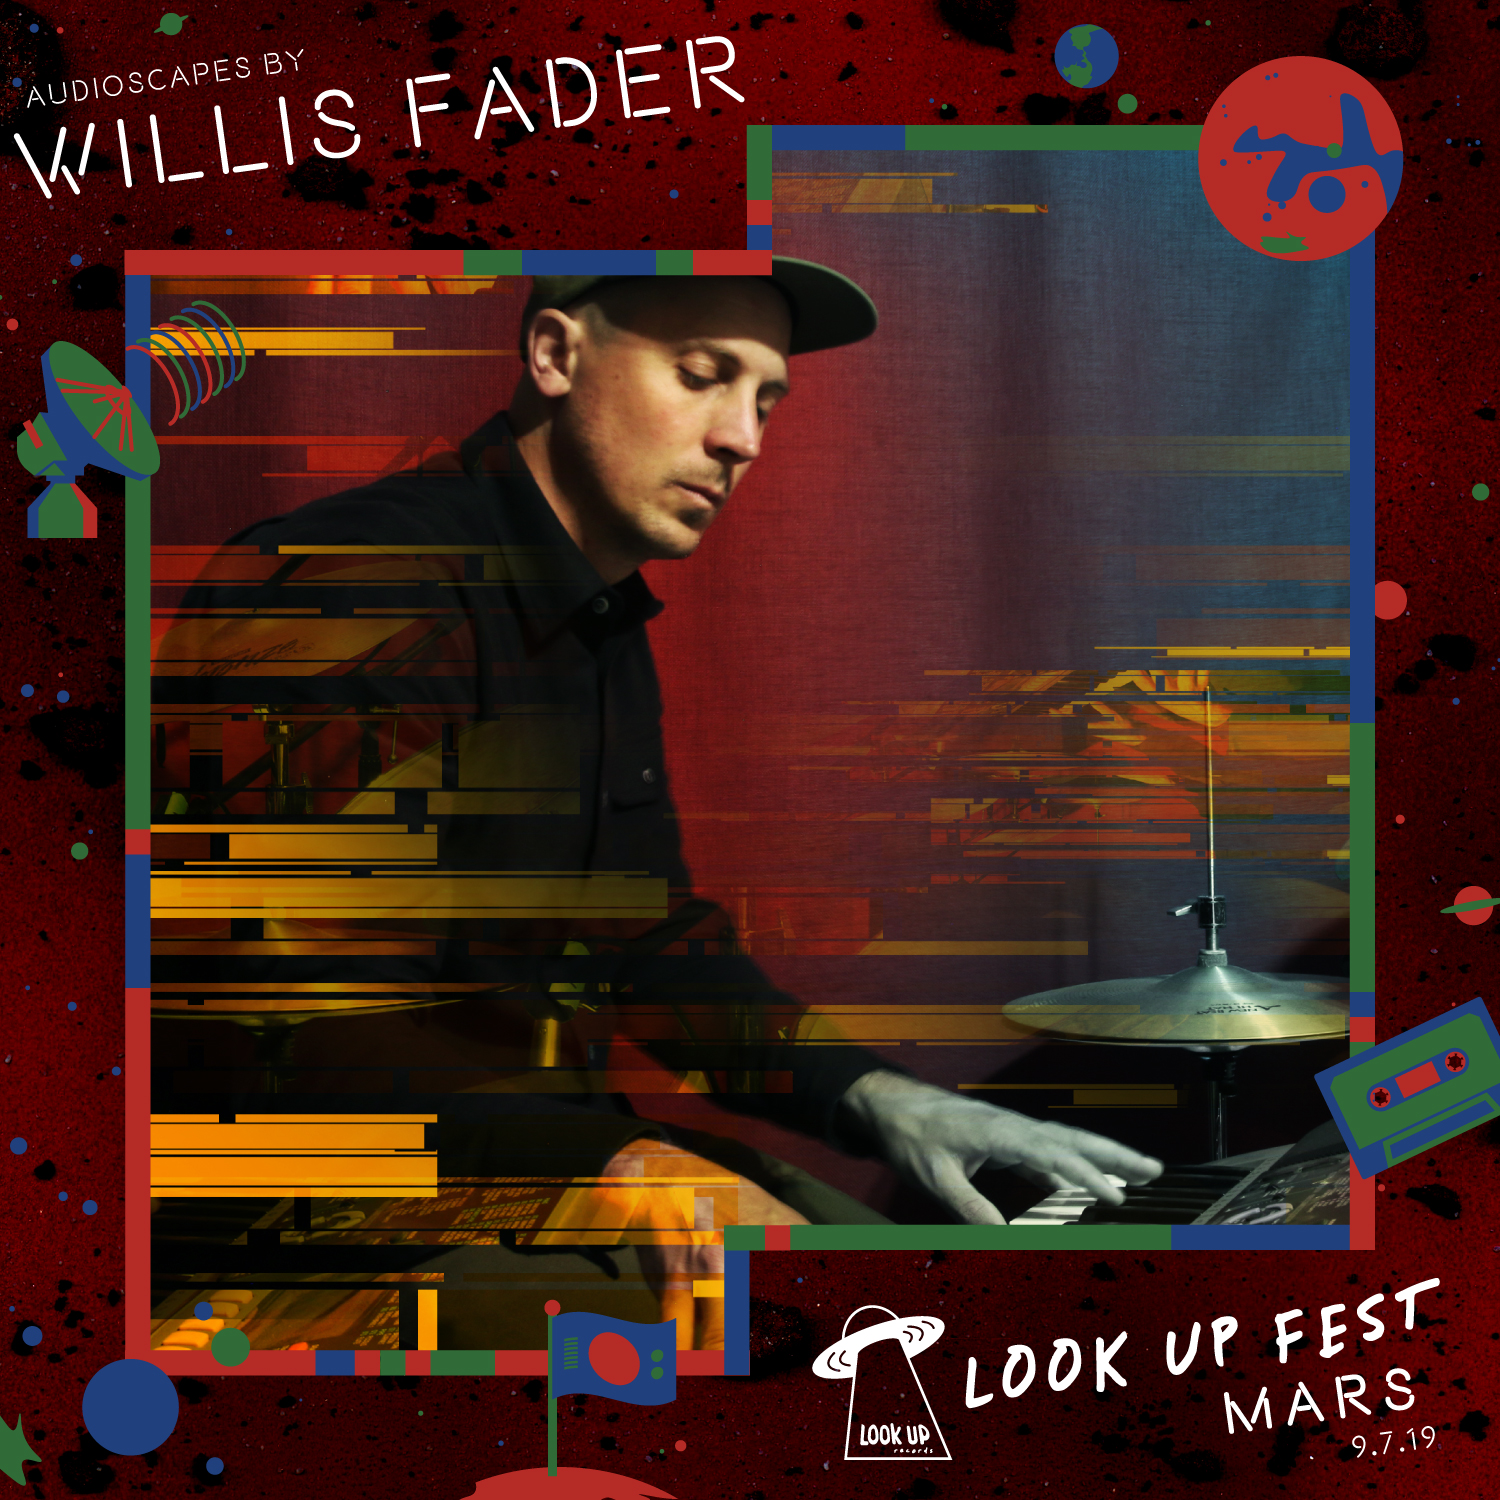 WILLIS FADER - Space is deep. And you need Willis Fader, your multidimensional audio-friend, along for the ride. Yes. That's right. Just chill. Think. Feel. Focus. Converse. Share moments with friends and loved ones. Let the sensuous beds of Willis Fader audioscapes enmesh your world.